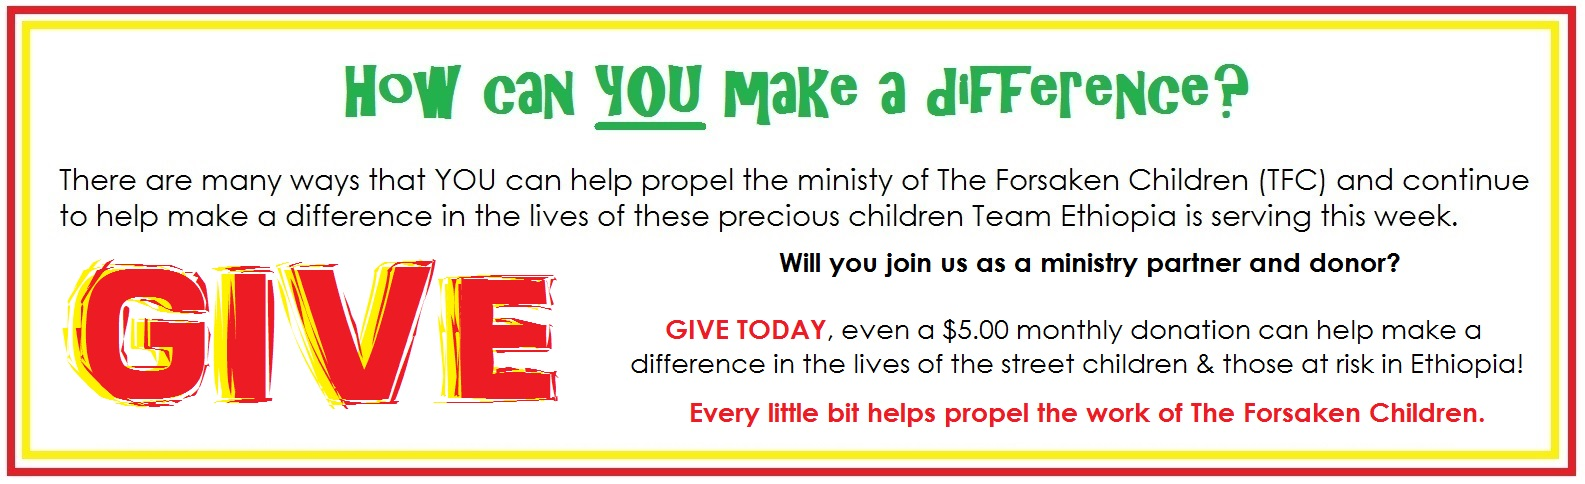 Make A Difference 4